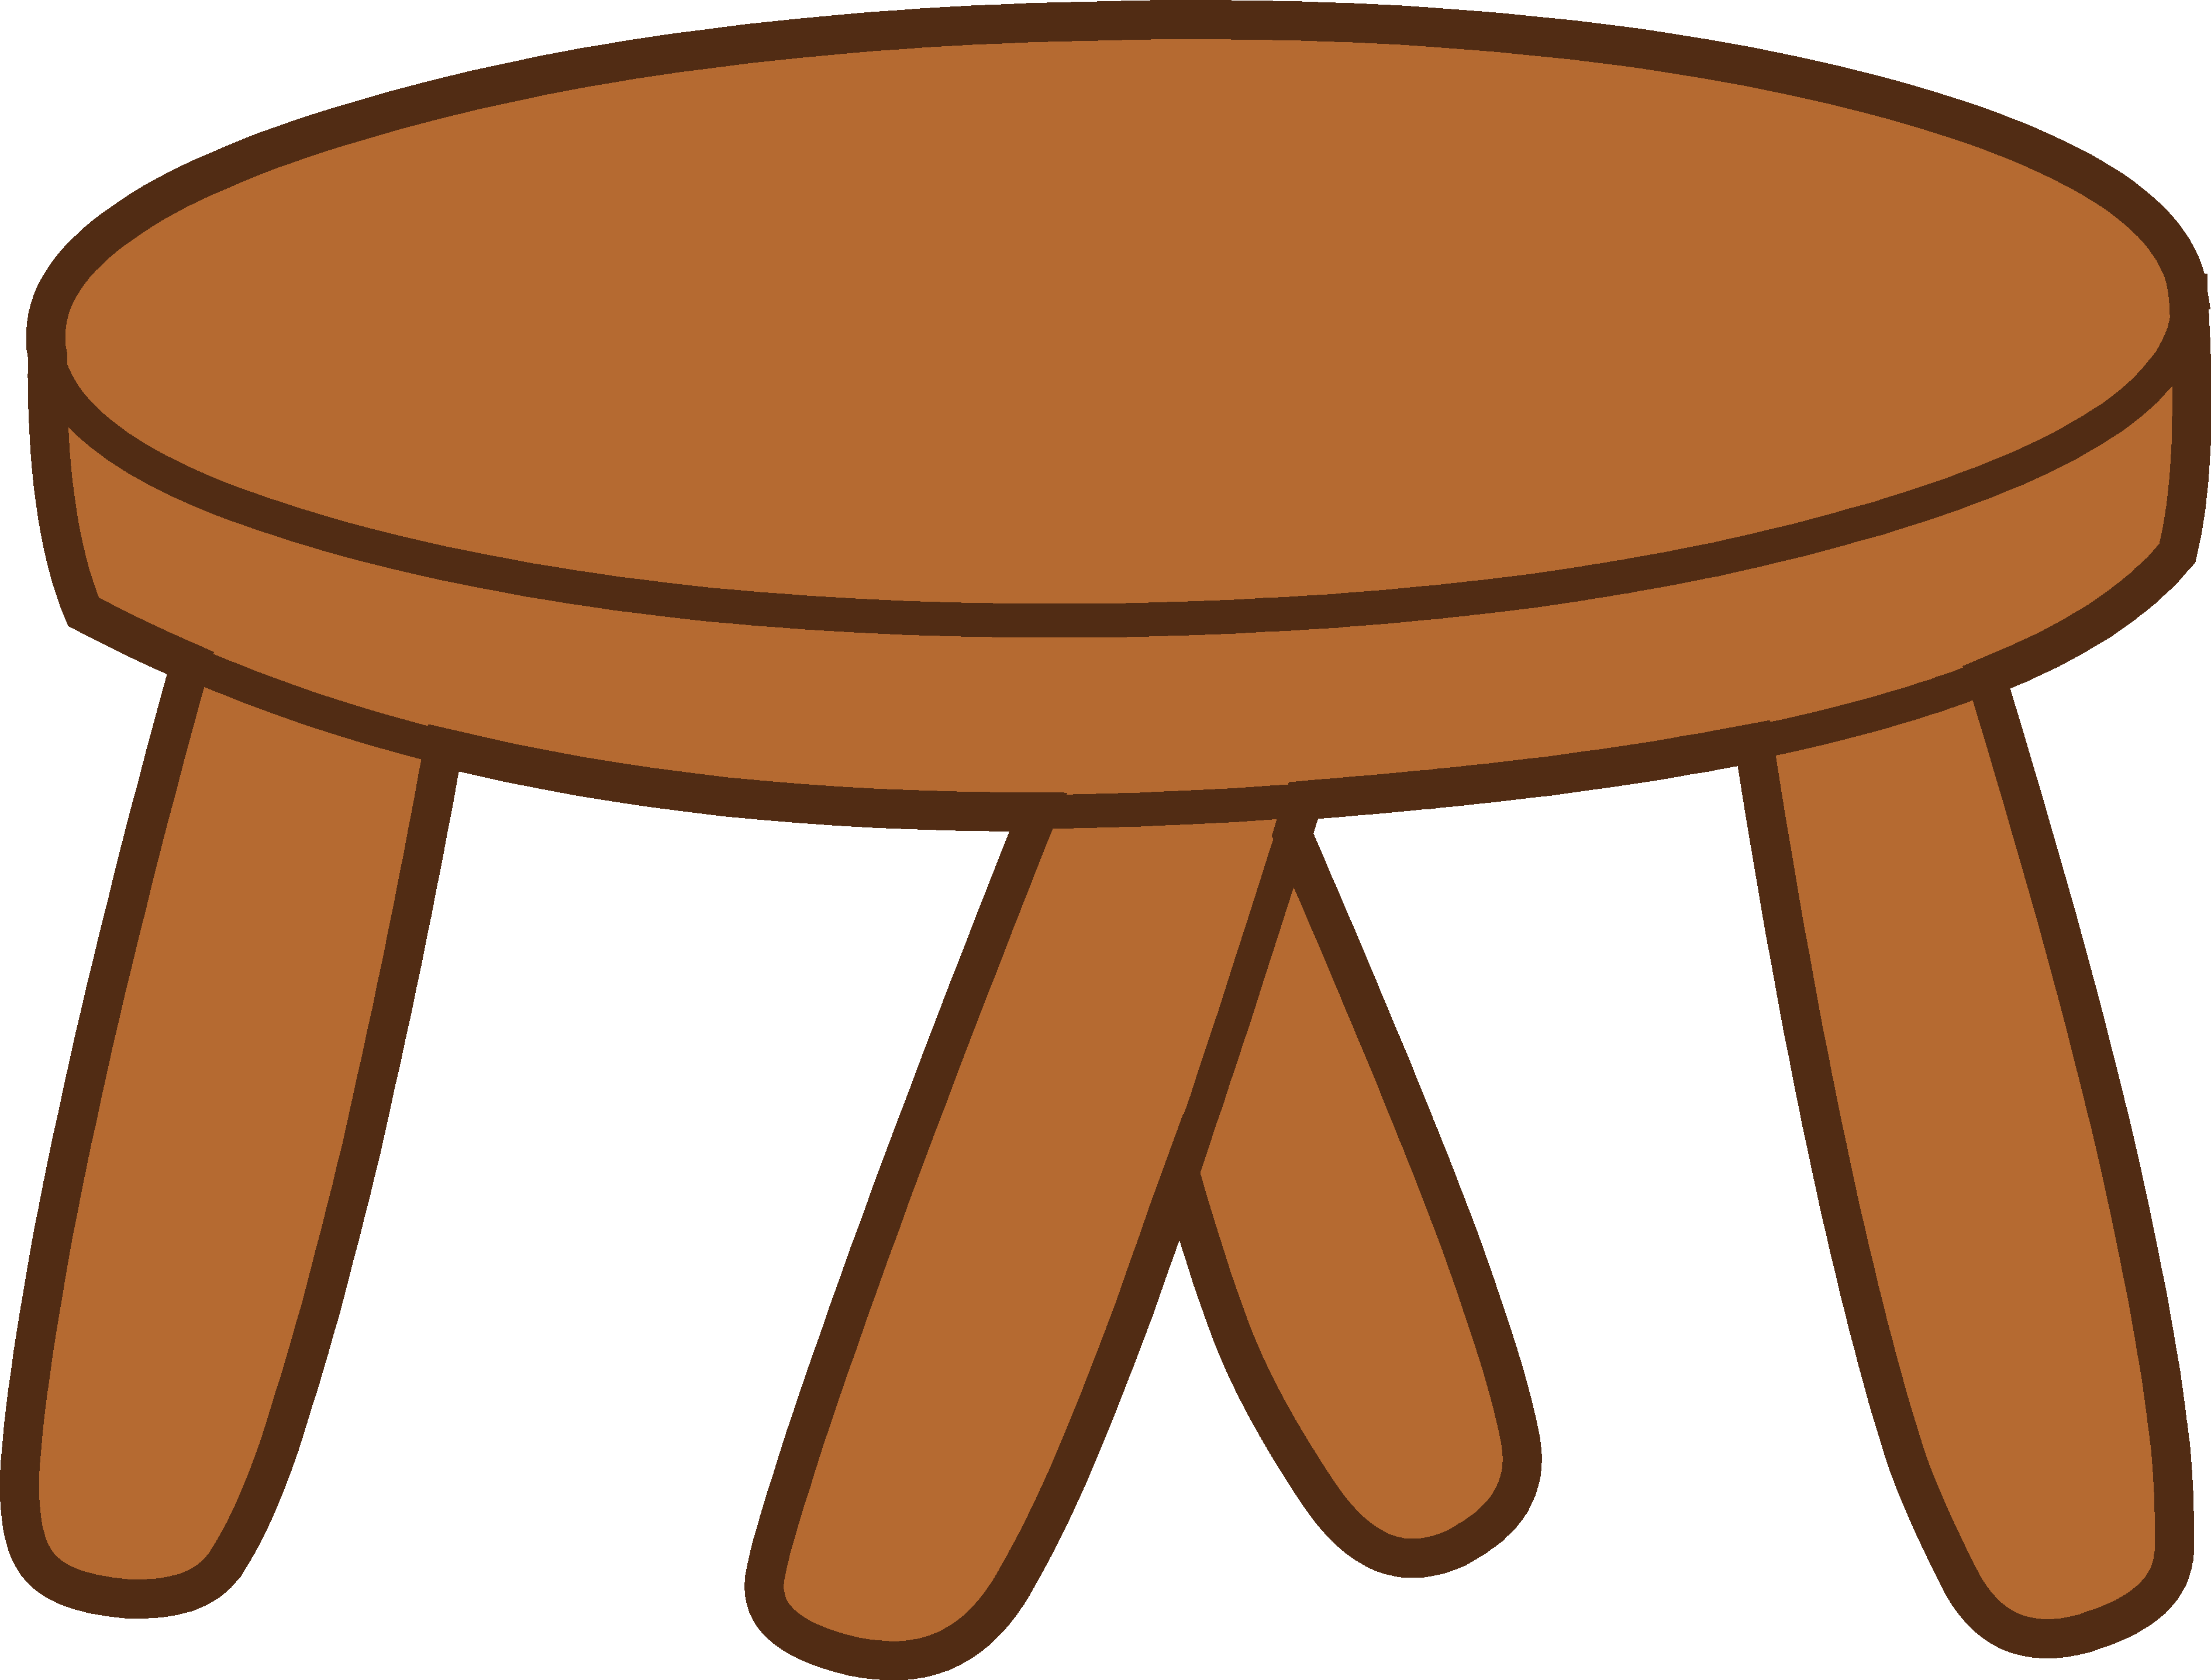 Stool best party cartoon. Furniture clipart png transparent download